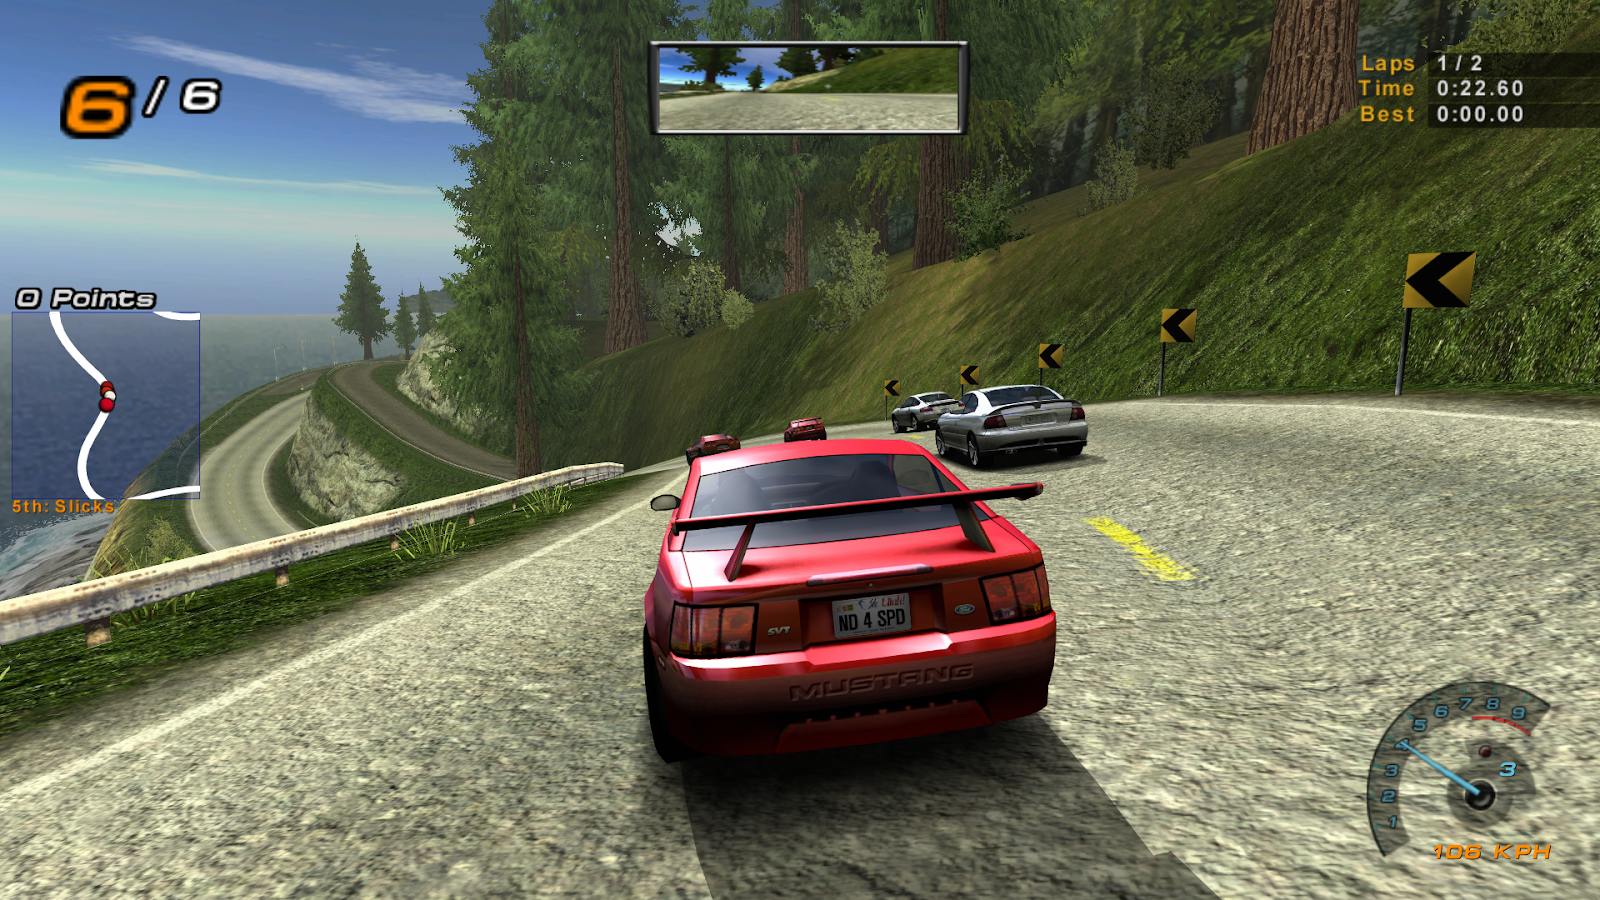 Need For Speed Hot Pursuit Highly Compressed 100MB - High Compress Games